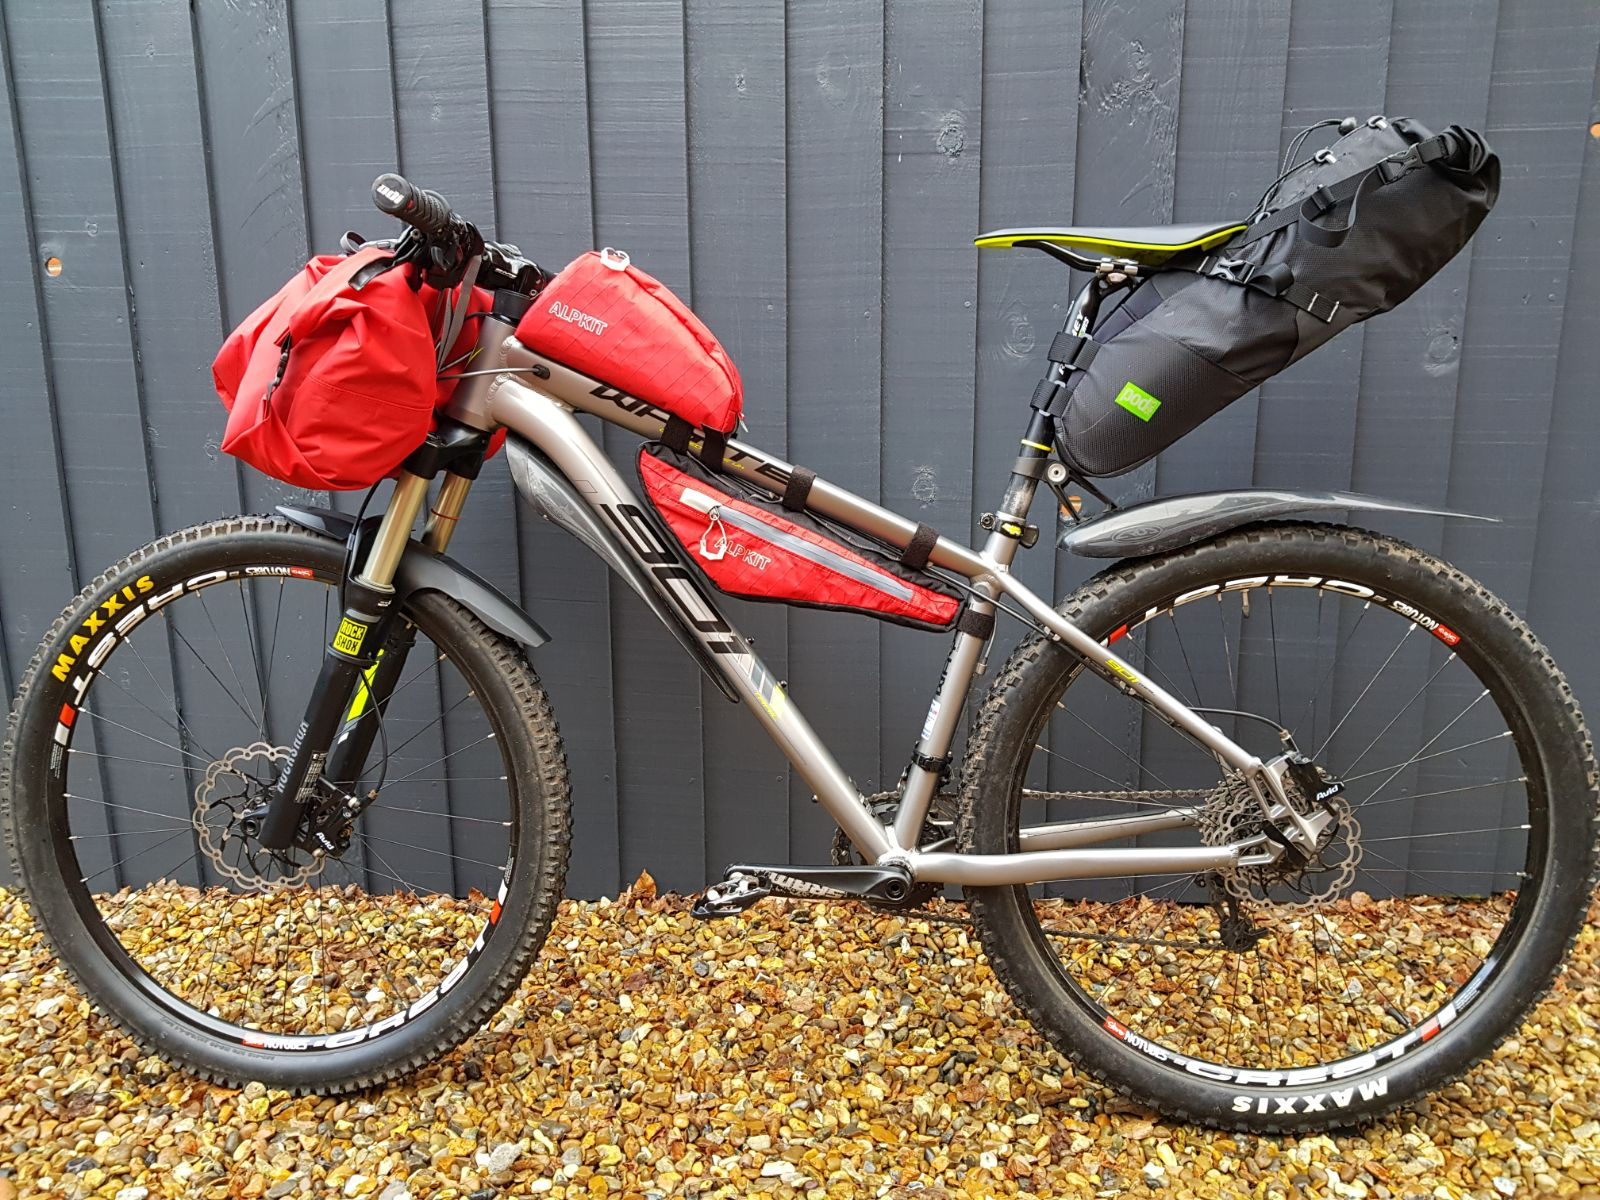 bearbones bikepacking loaded bike